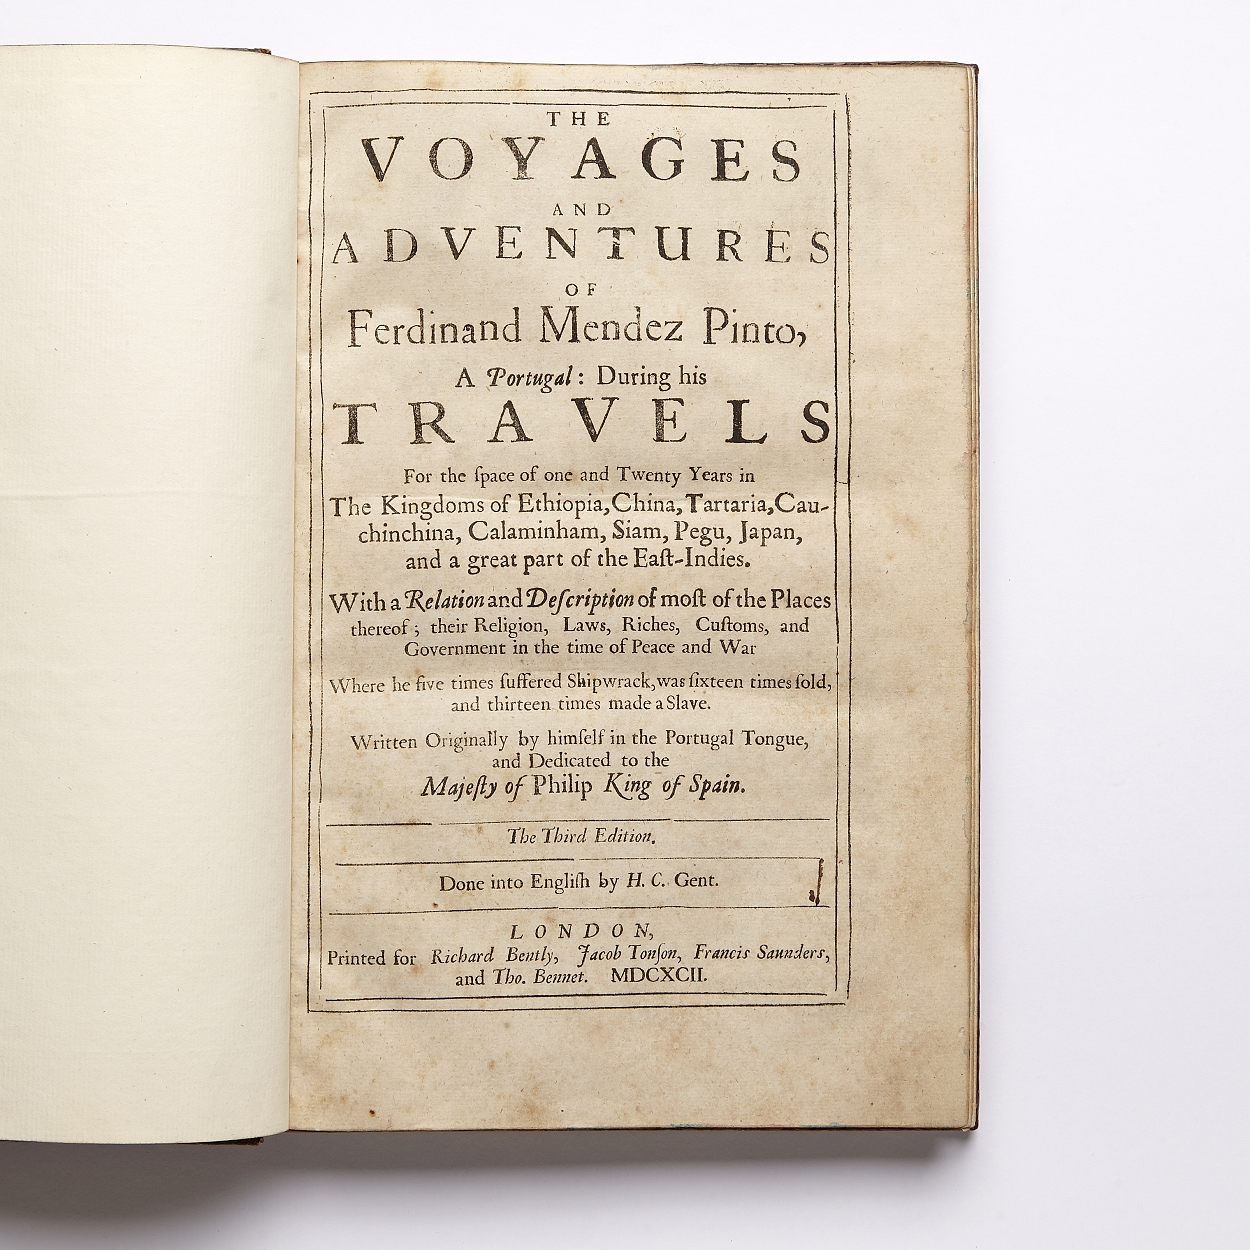 Mendes Pinto's The Voyages... 1692